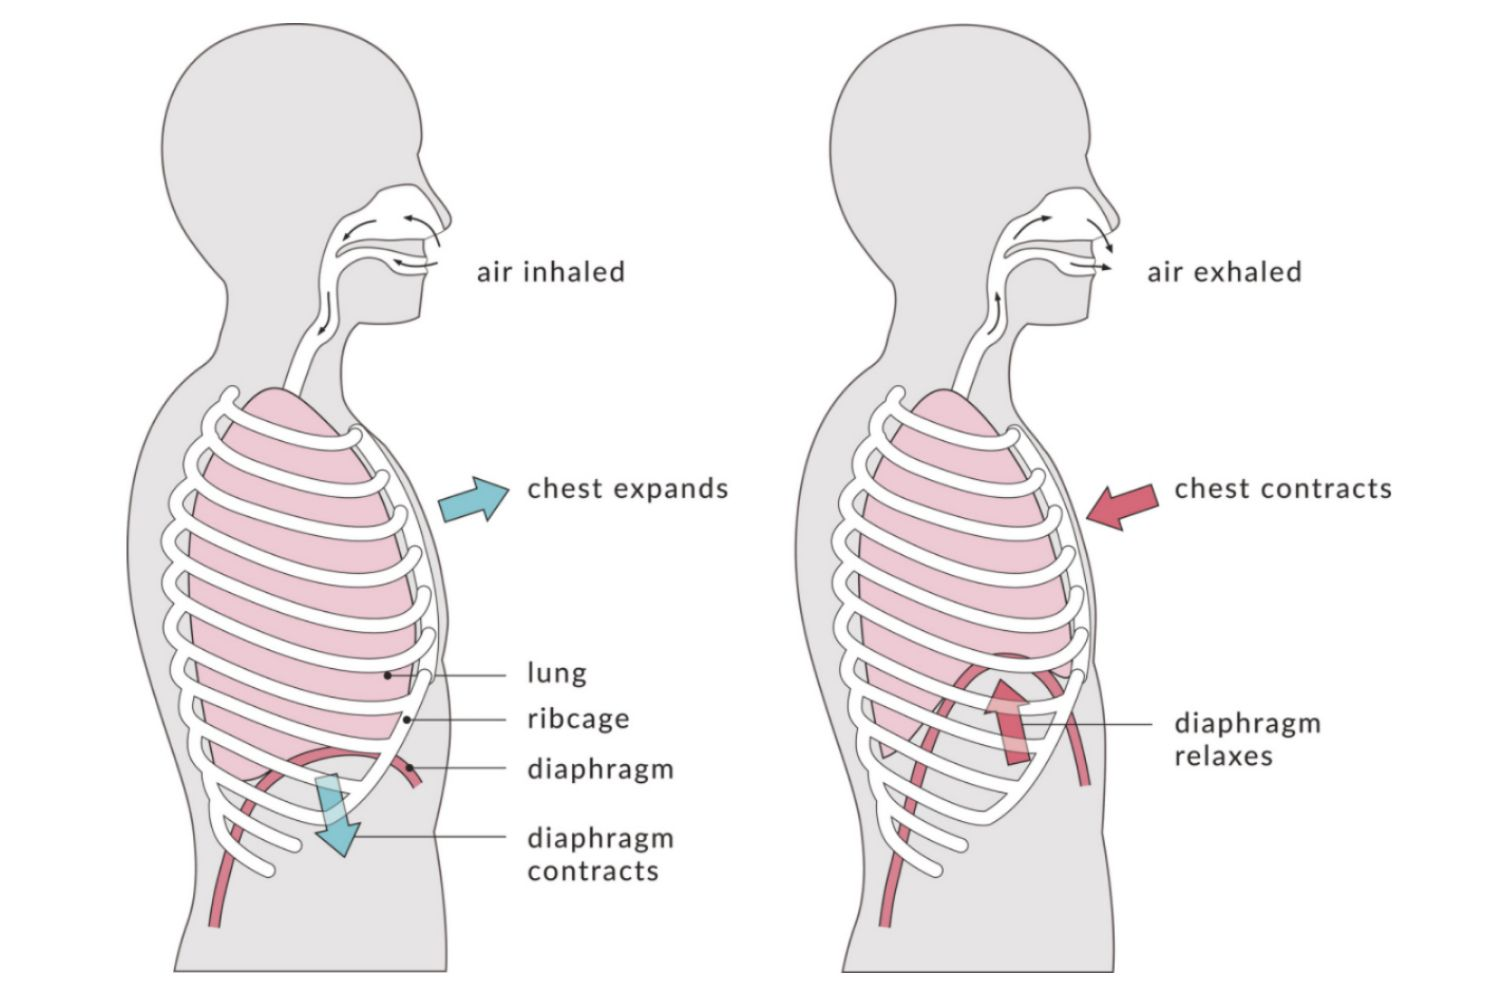 types of respiration: external and internal  breathing diagram